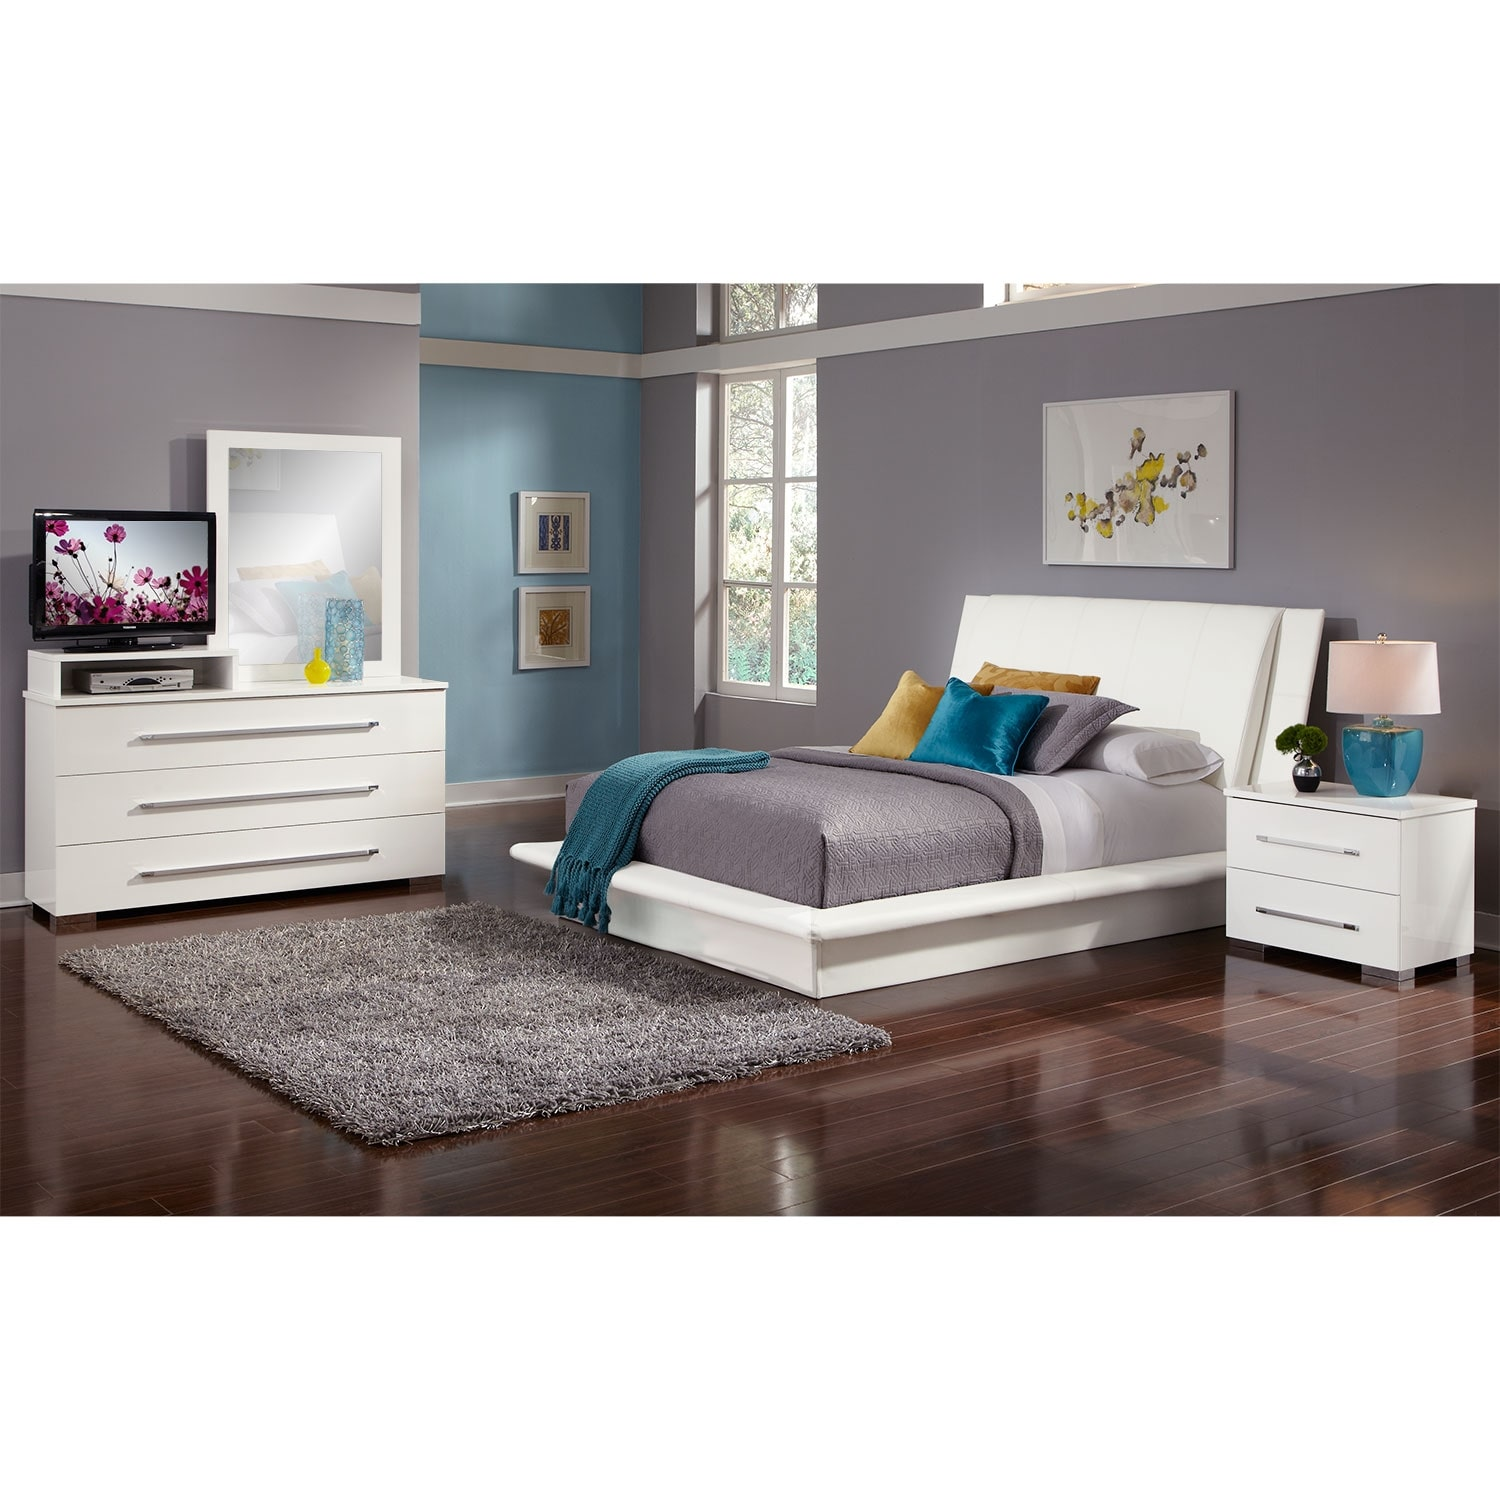 Dimora 6 Piece Queen Upholstered Bedroom Set With Media Dresser White Val